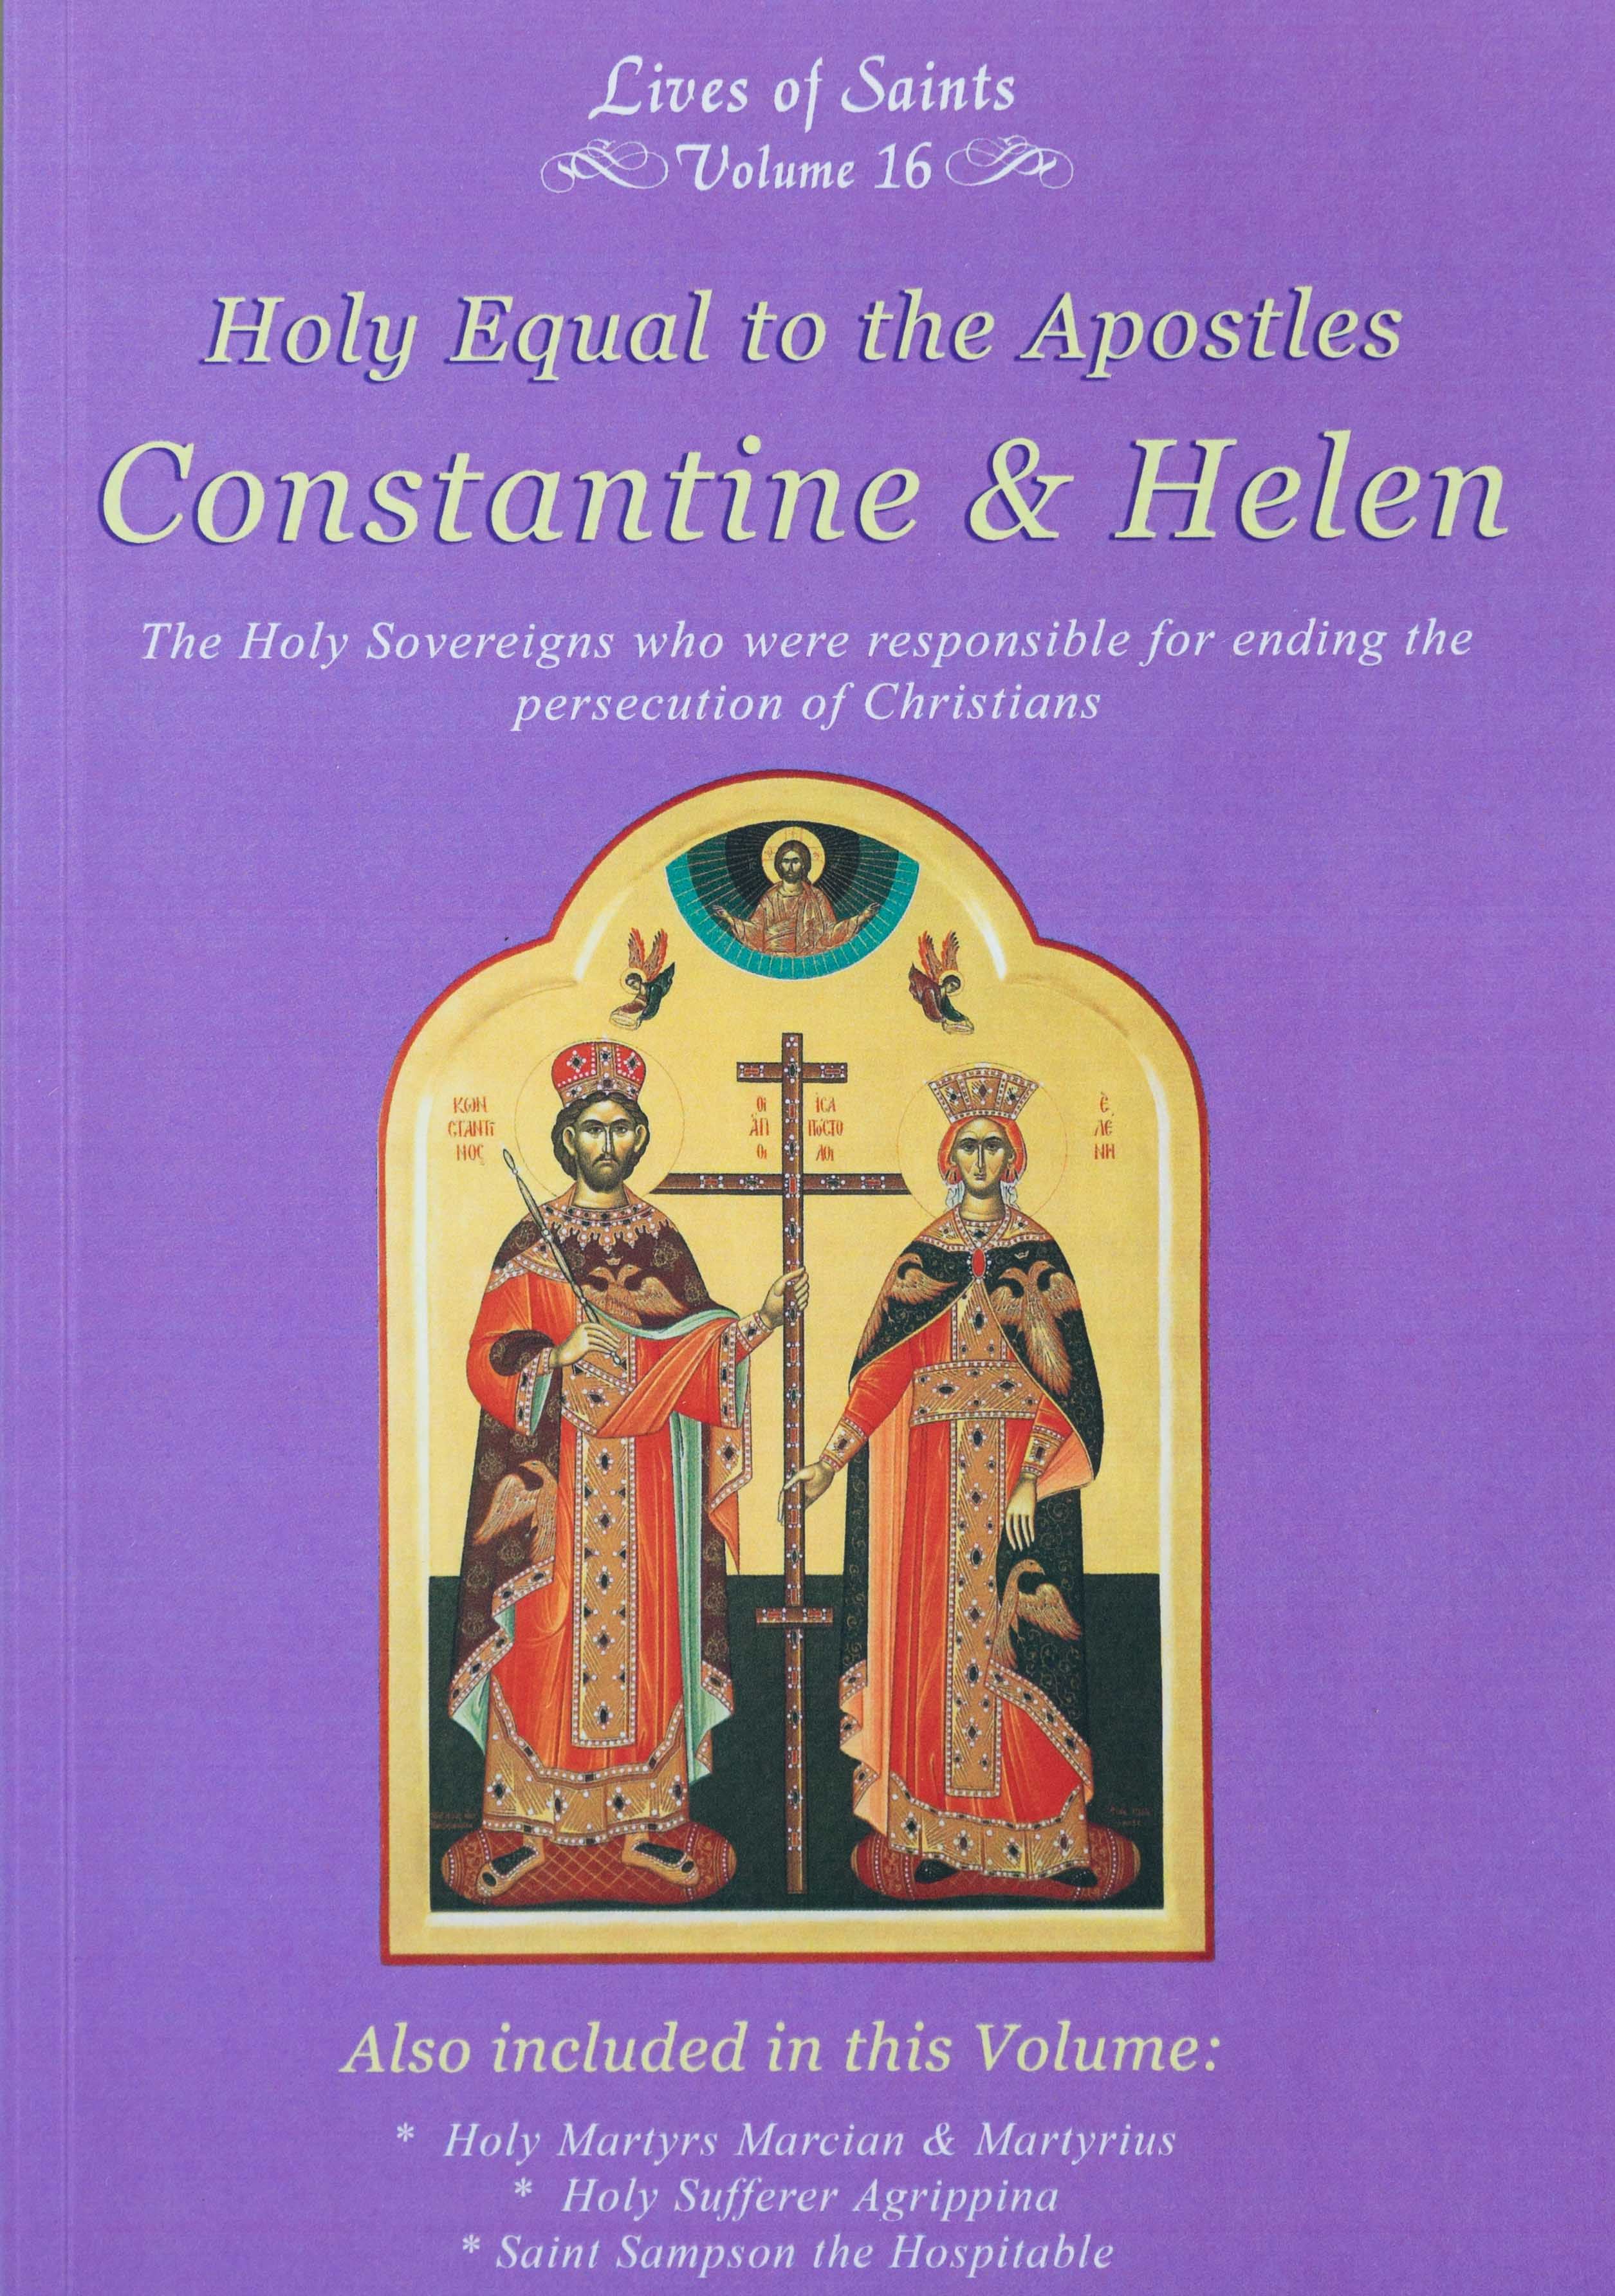 Lives of Saints Vol. 16: Holy Equal to the Apostles Constantine & Helen